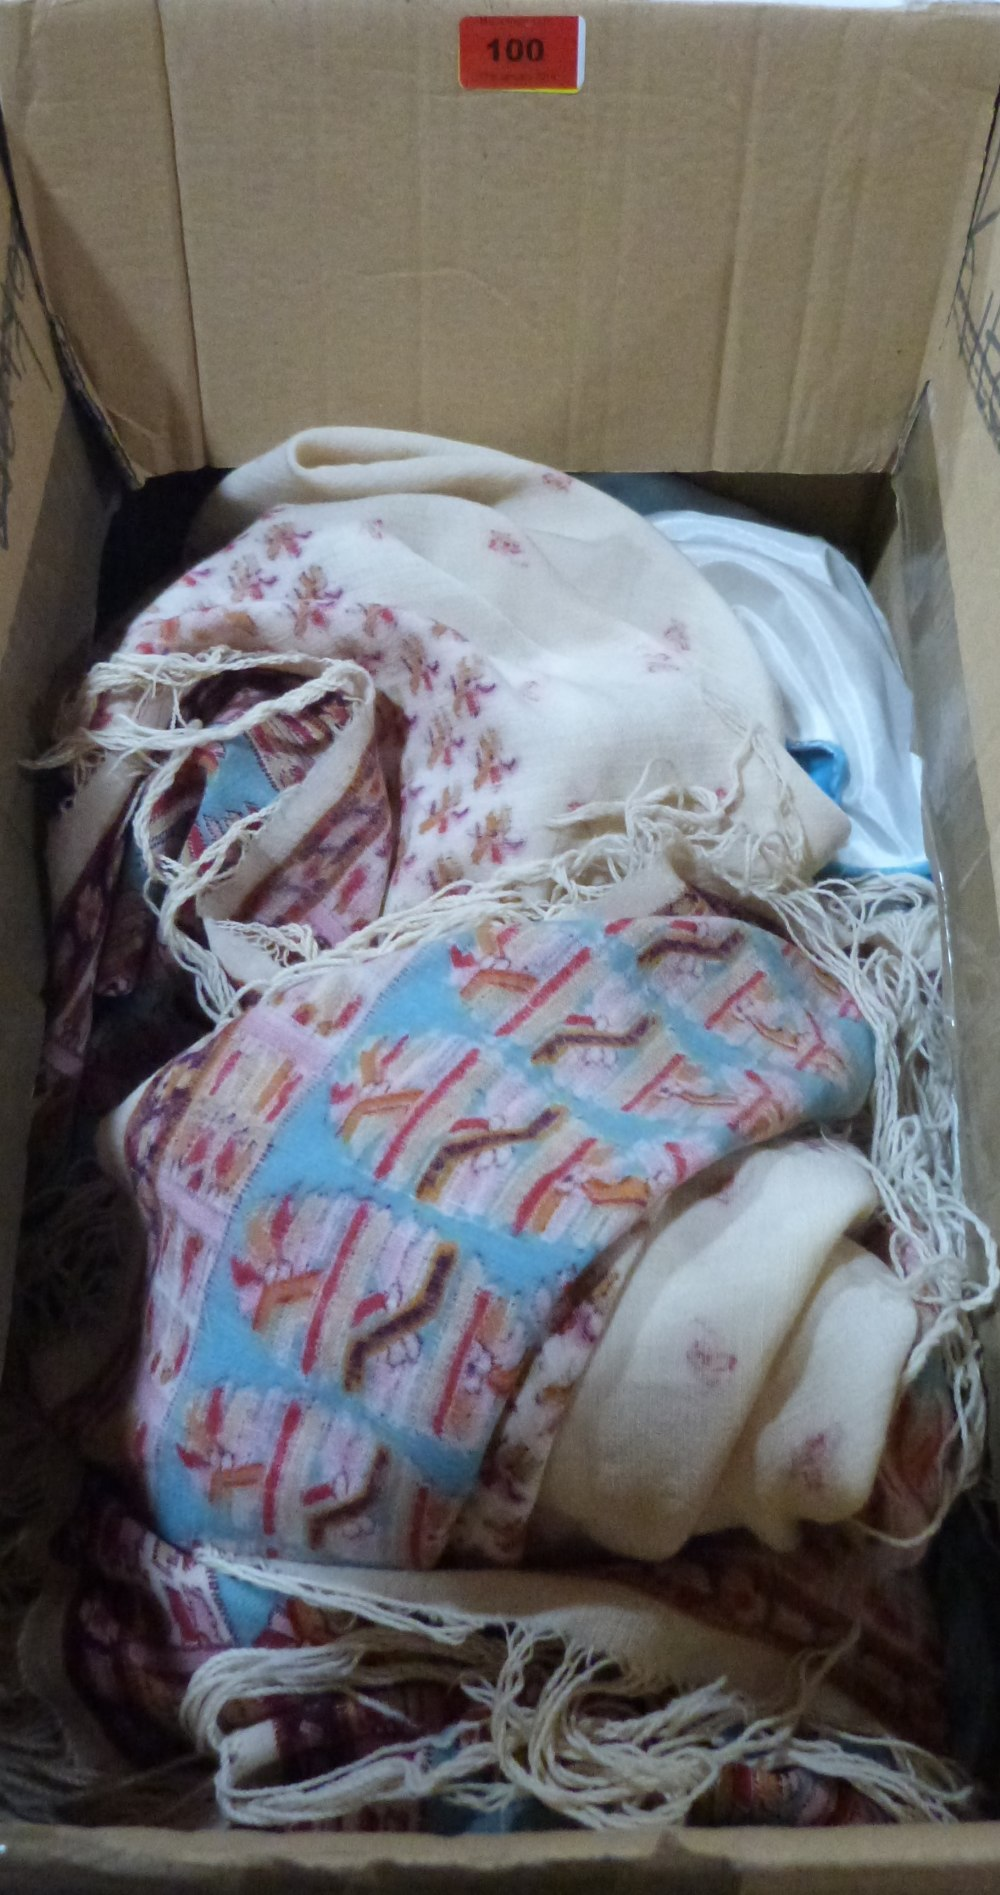 A box of shawls and other textiles